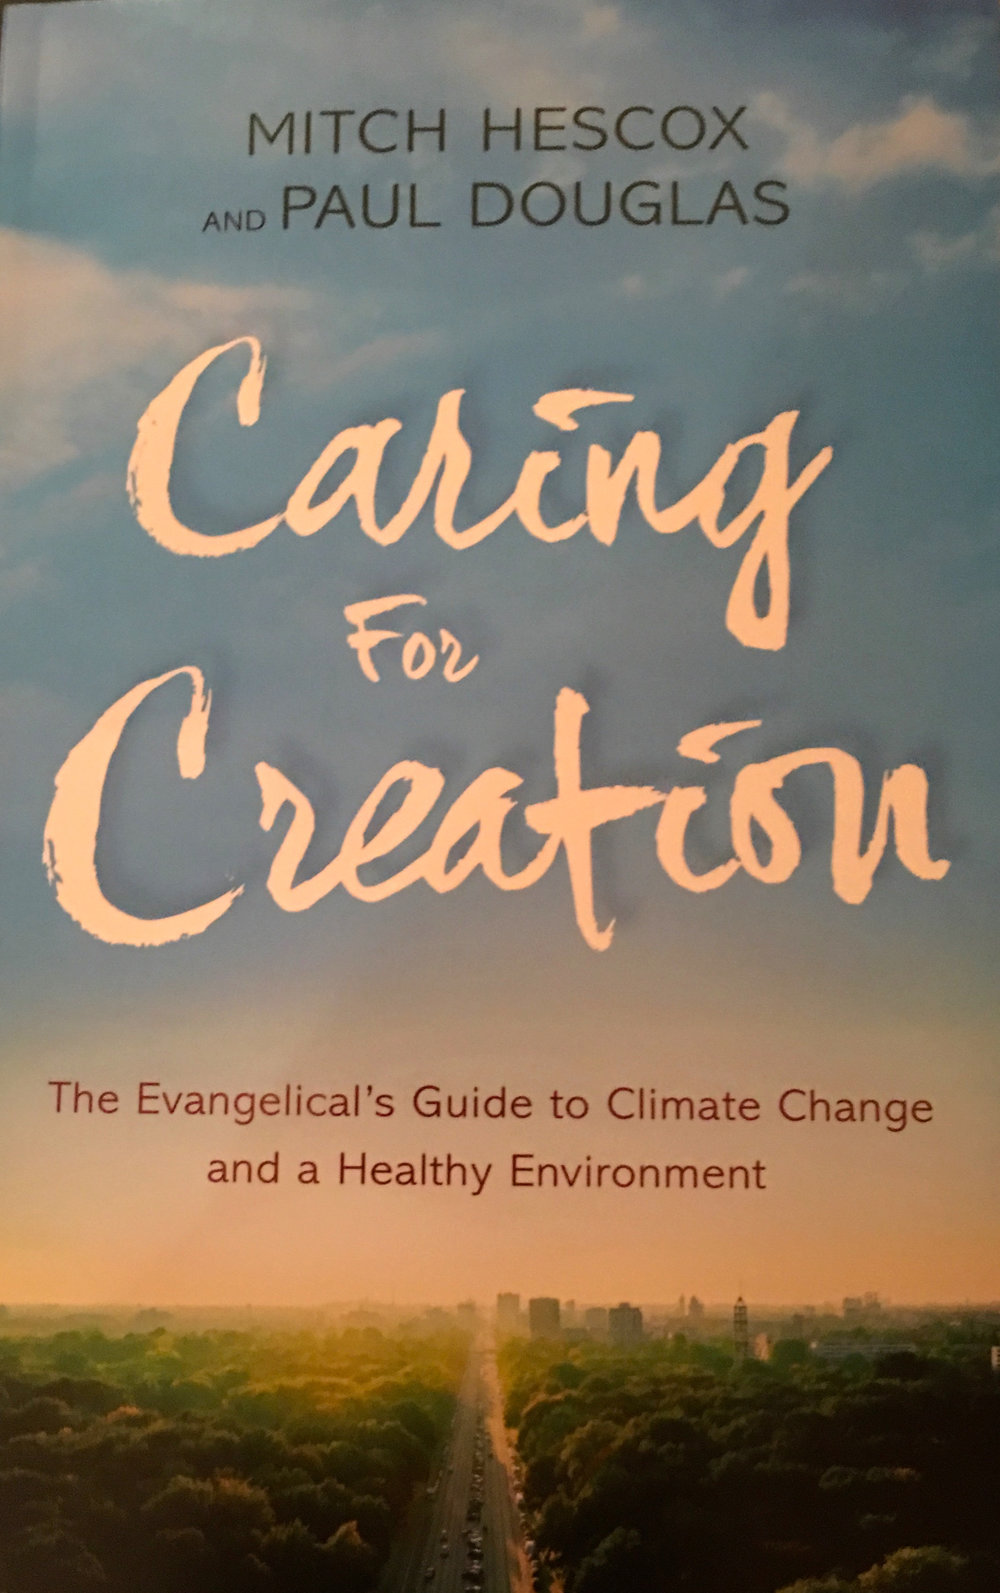 w3 book club caring for creation by paul douglas and mitch hescox